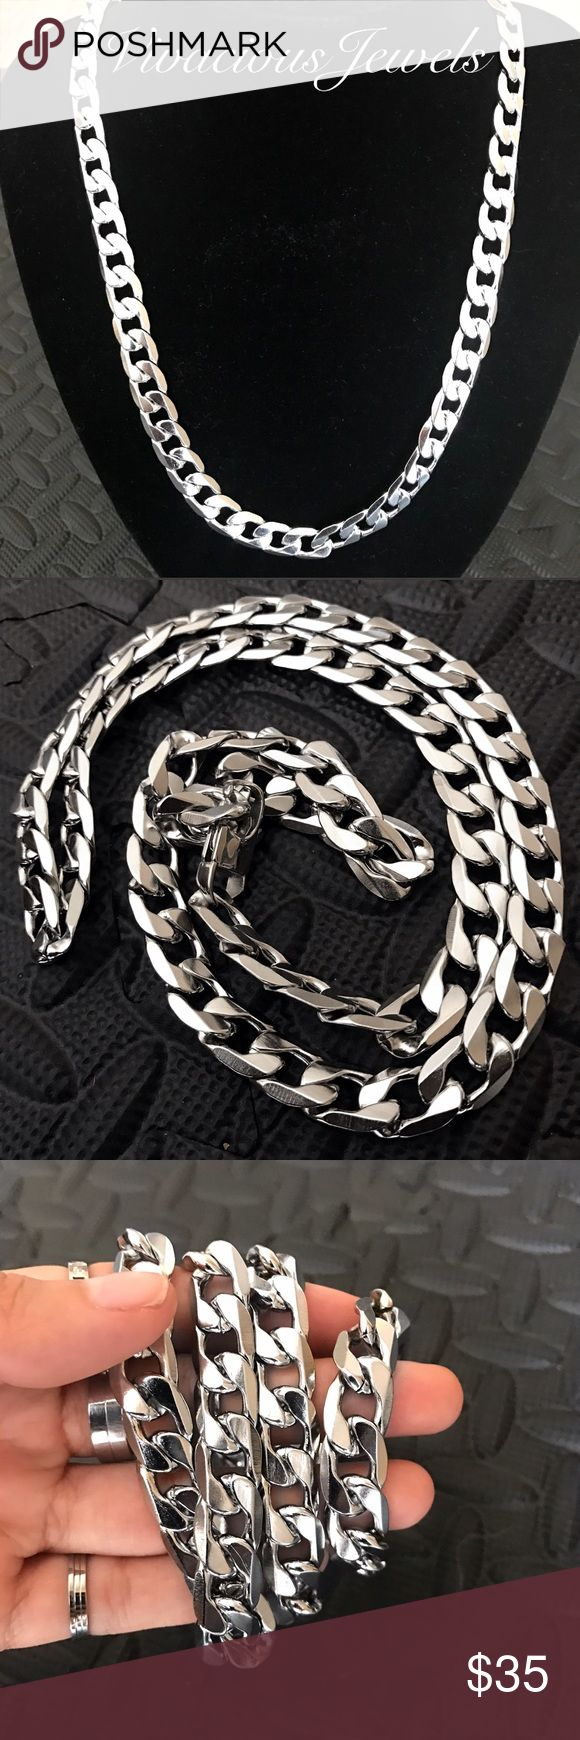 "12MM Stainless Steel Flat Cuban Chain Necklace Brand new Price firm No trades Gift box included  Metal: Stainless steel Color: Silver Width: 12mm  Chain lengths 30"" or 36""  Stainless steel does not rust or turn the skin green Accessories Jewelry"